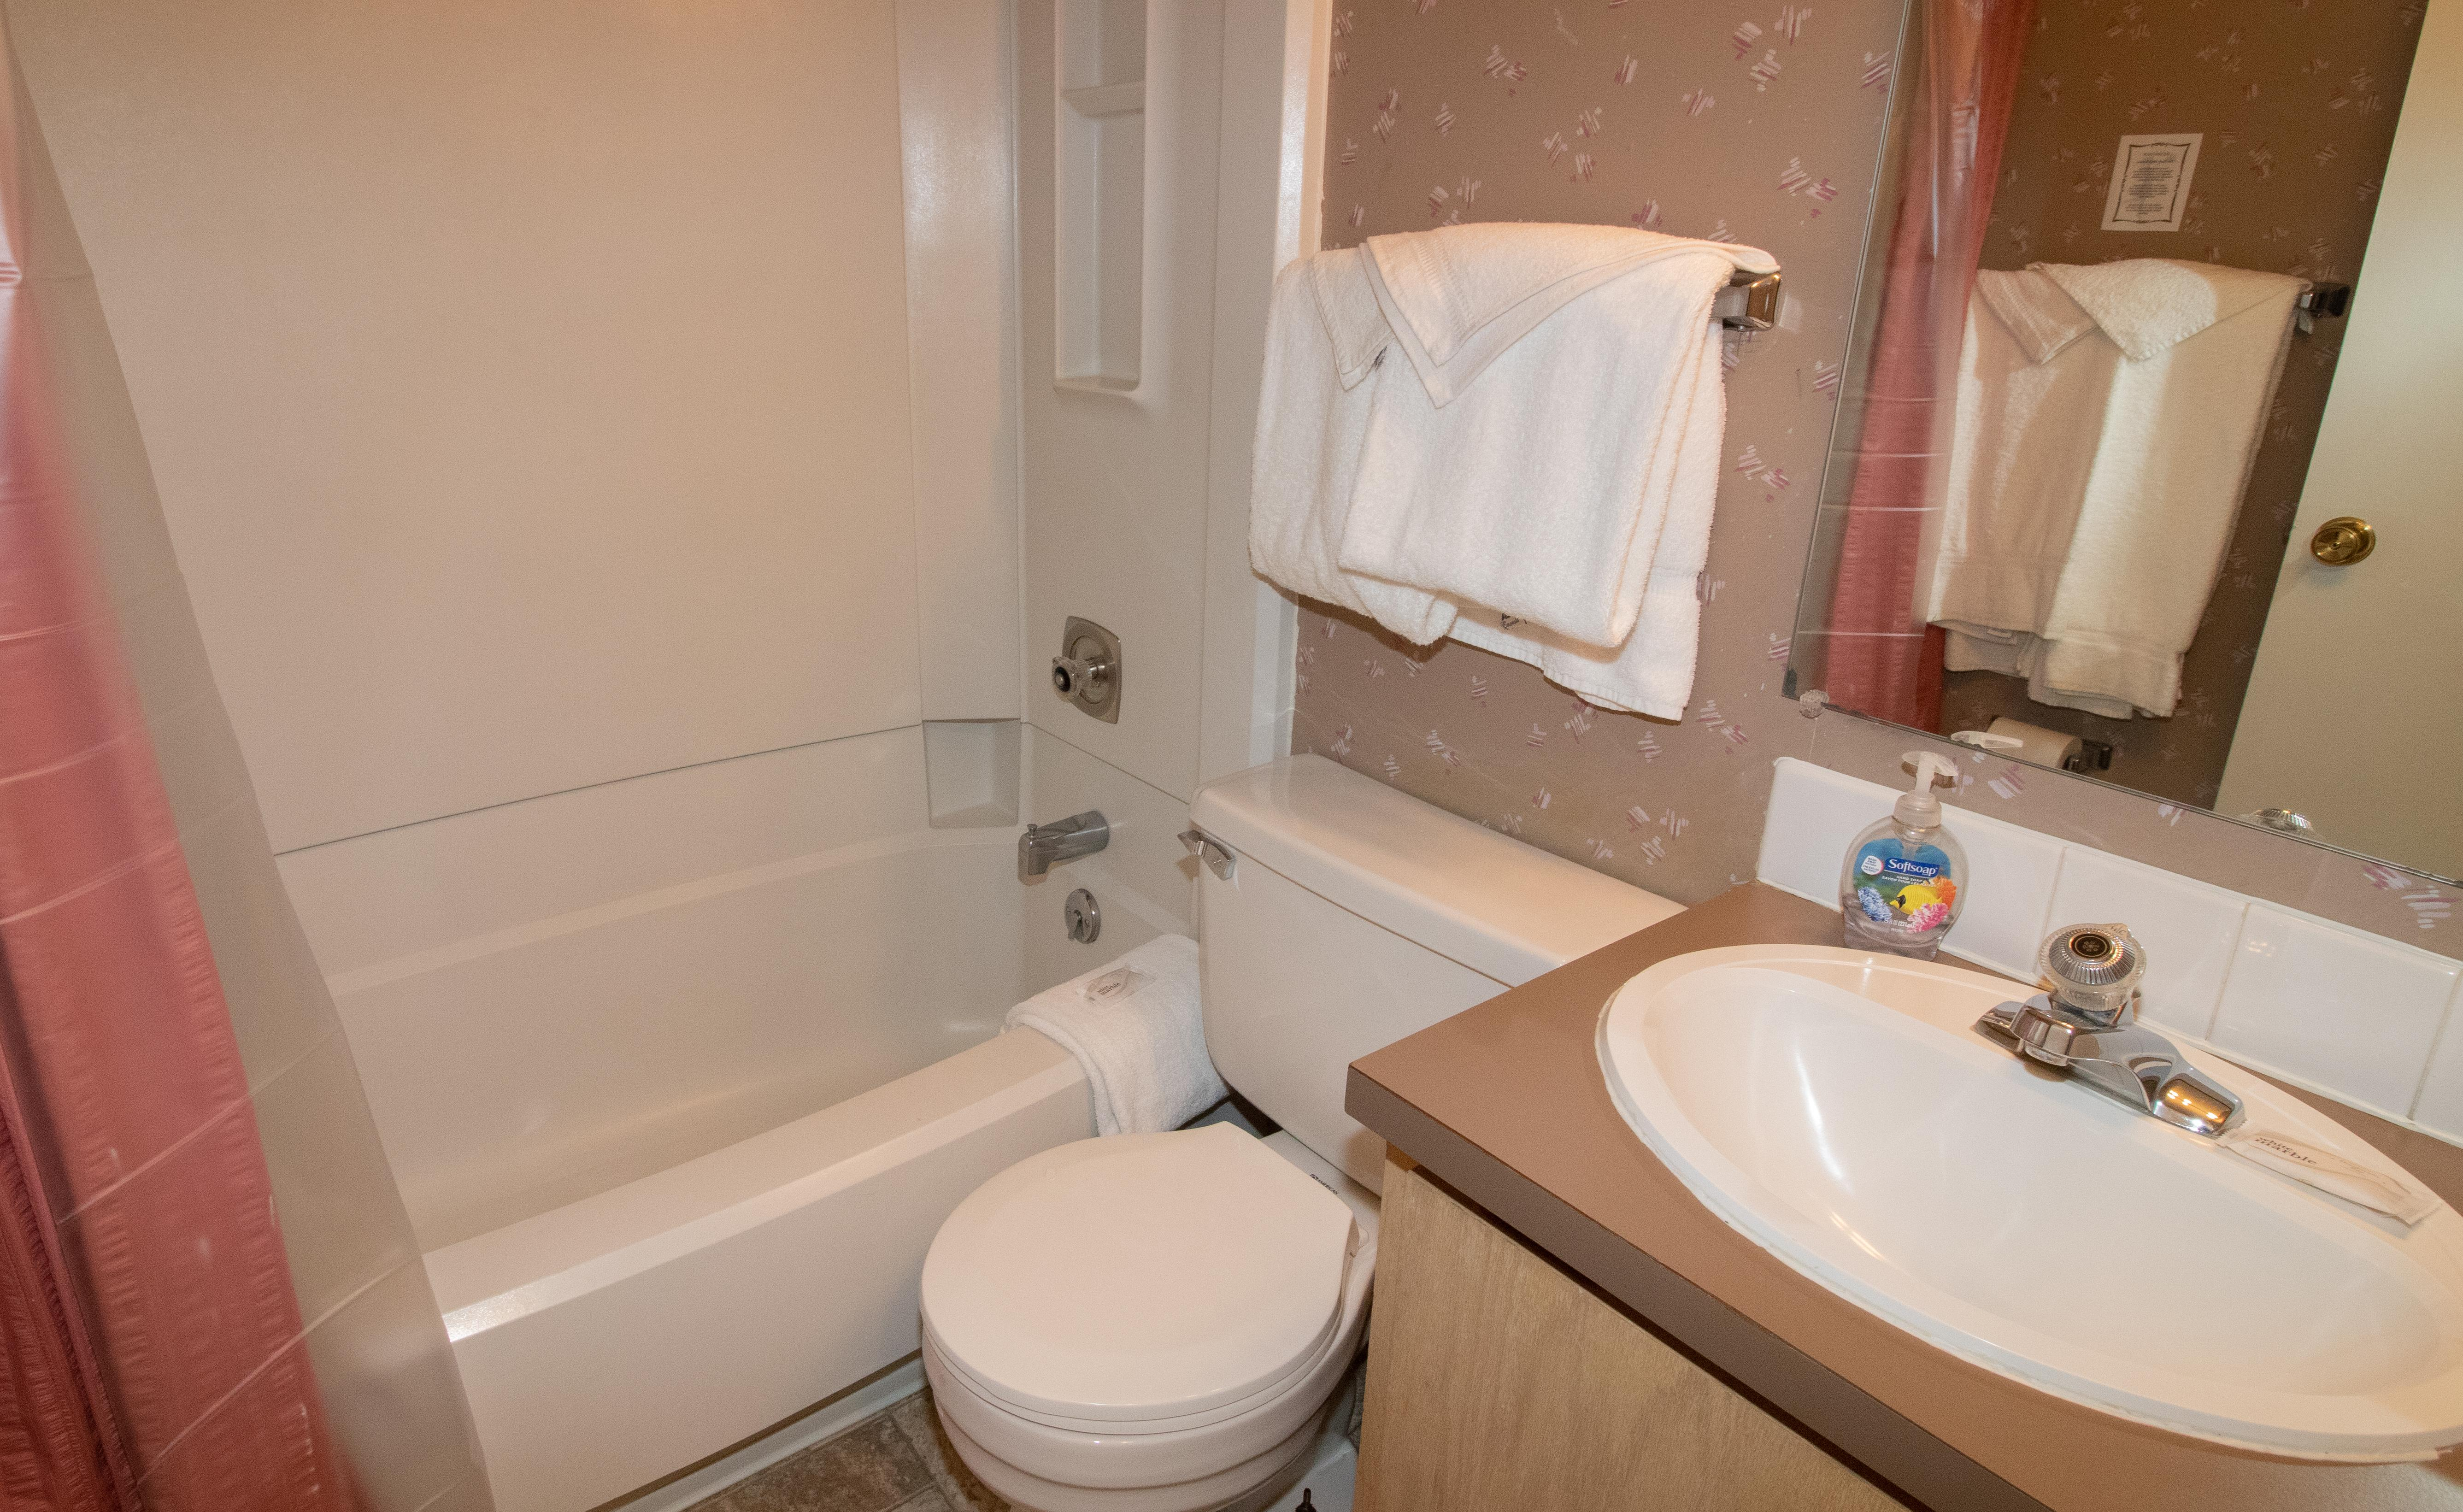 Tub/Shower combo in bathroom - CLEAN!